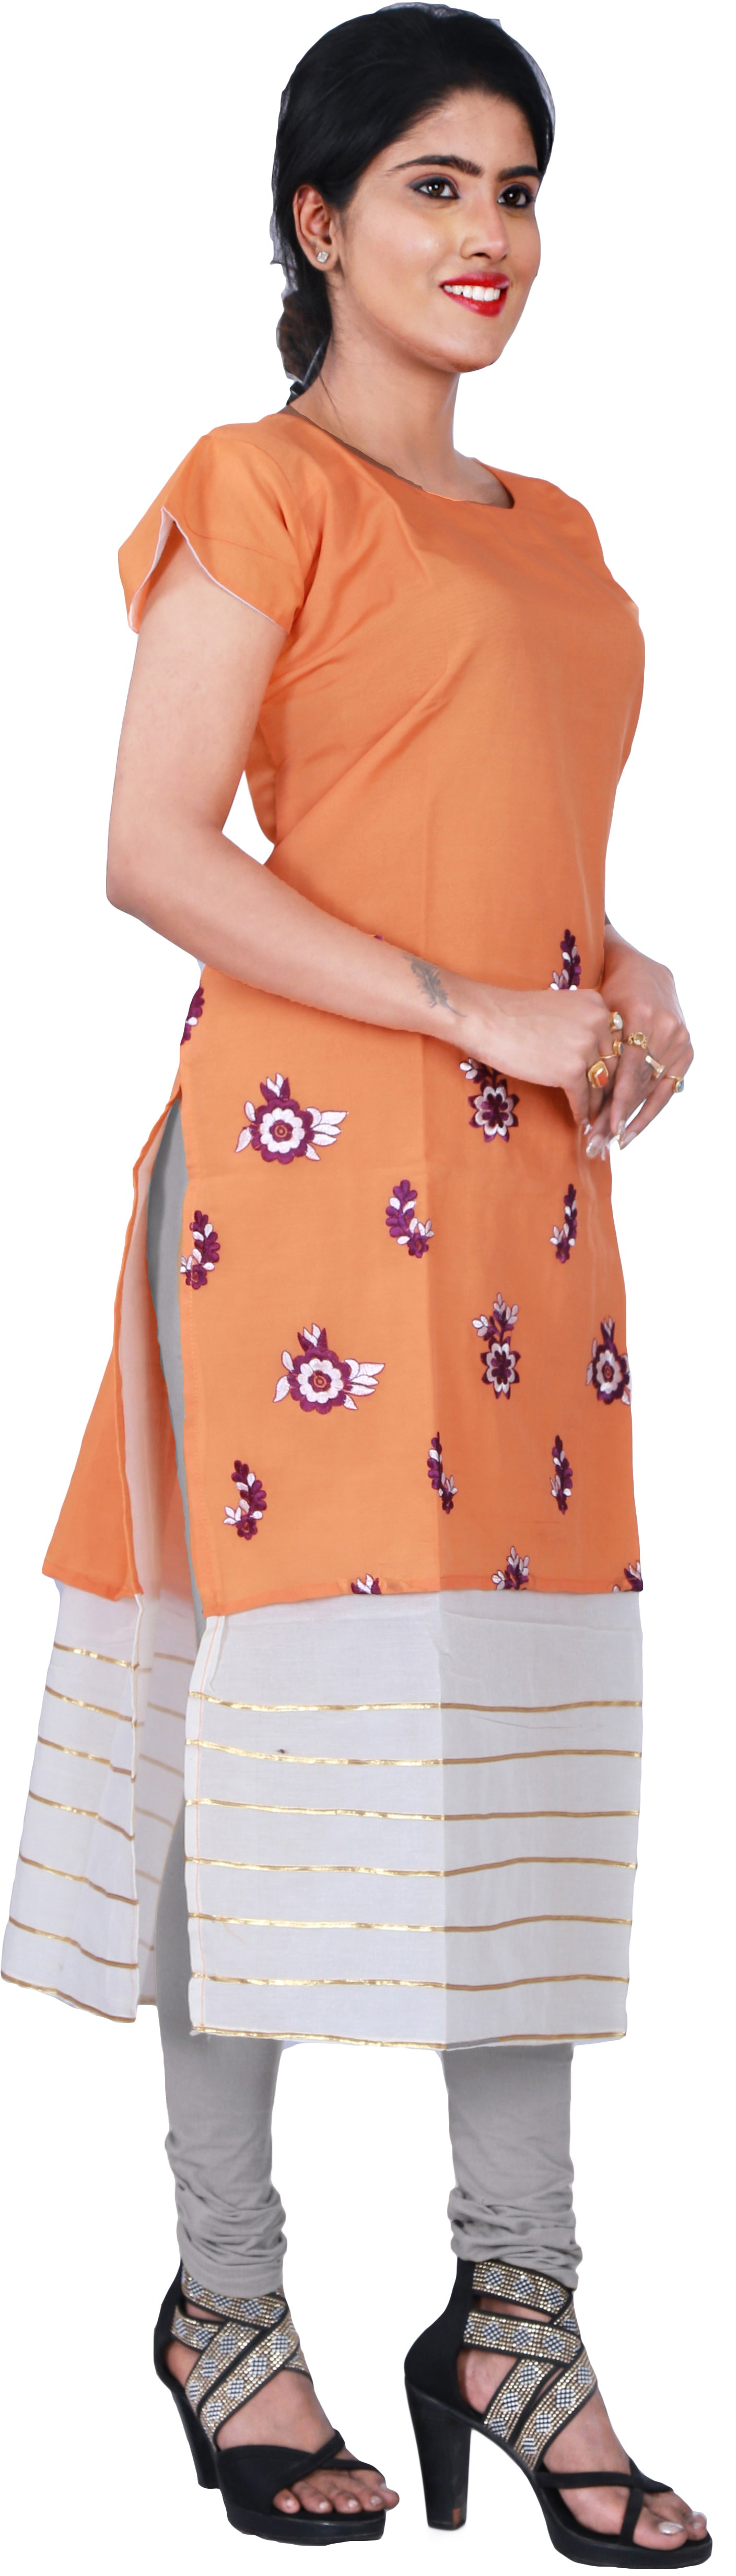 SMSAREE Oraange Designer Casual Partywear Pure Cotton Thread & Gota Hand Embroidery Work Stylish Women Kurti Kurta With Free Matching Leggings D502